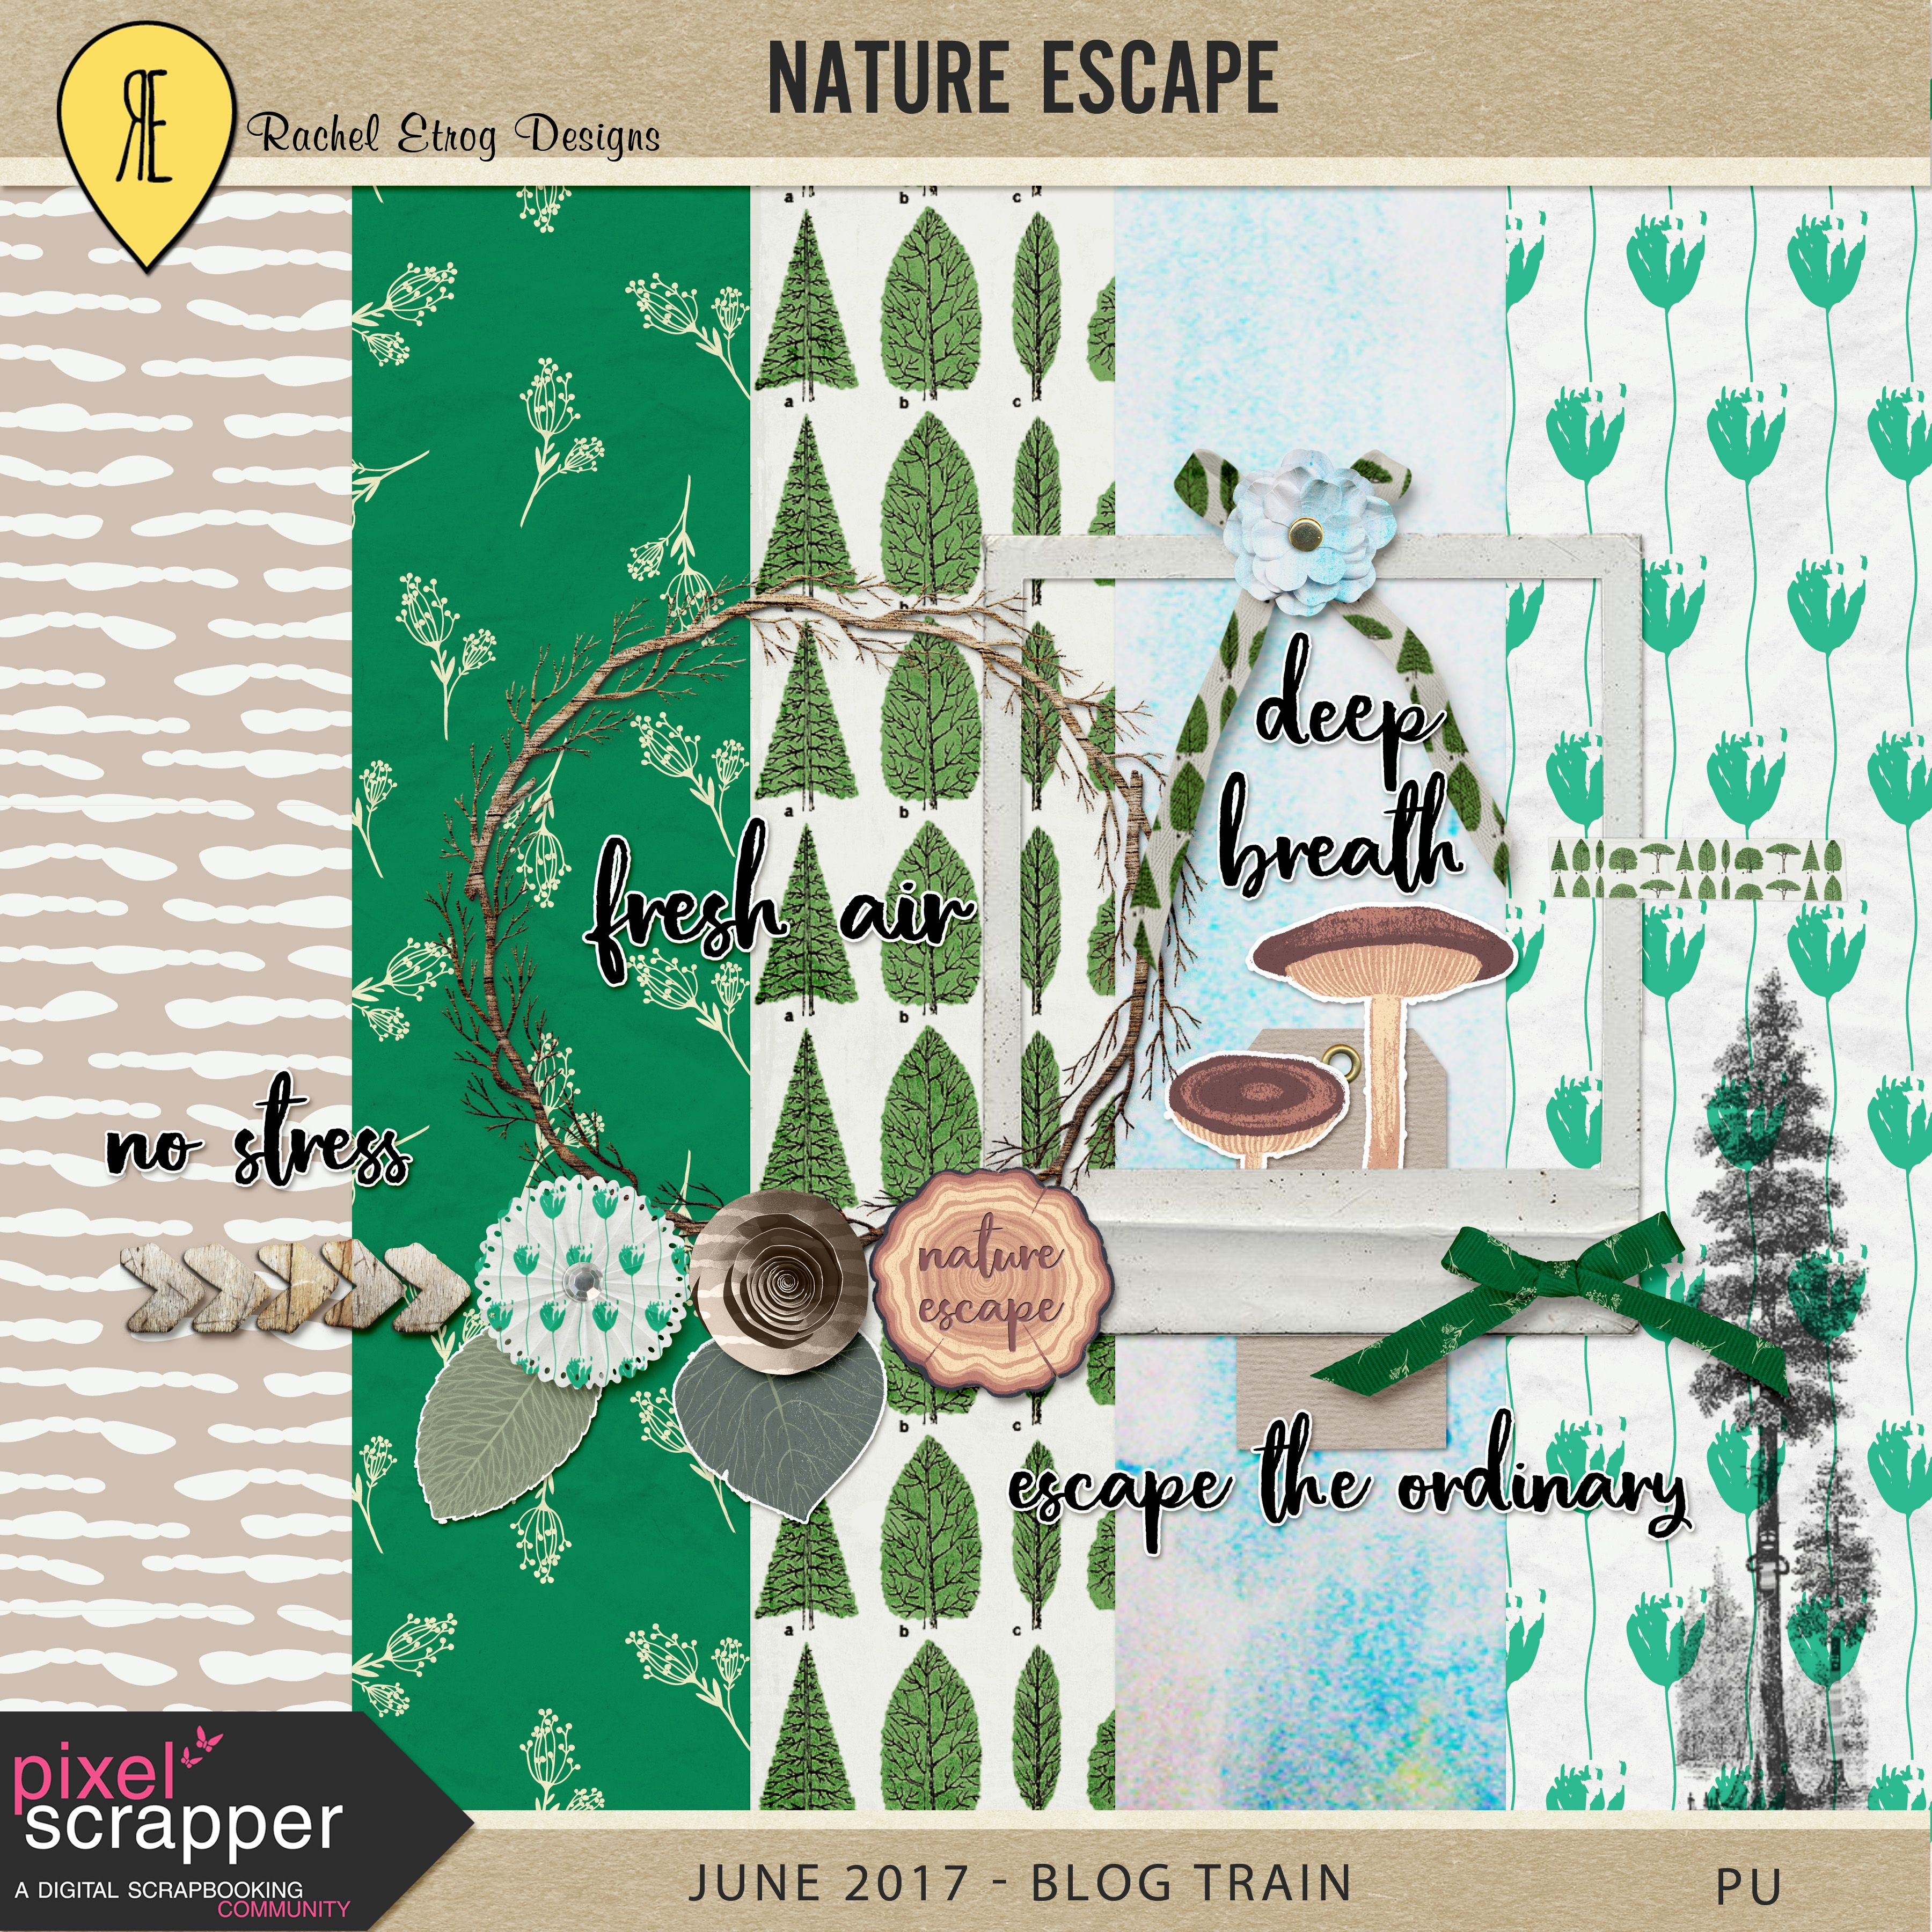 Free Nature Escape Mini Kit from Rachel Etrog